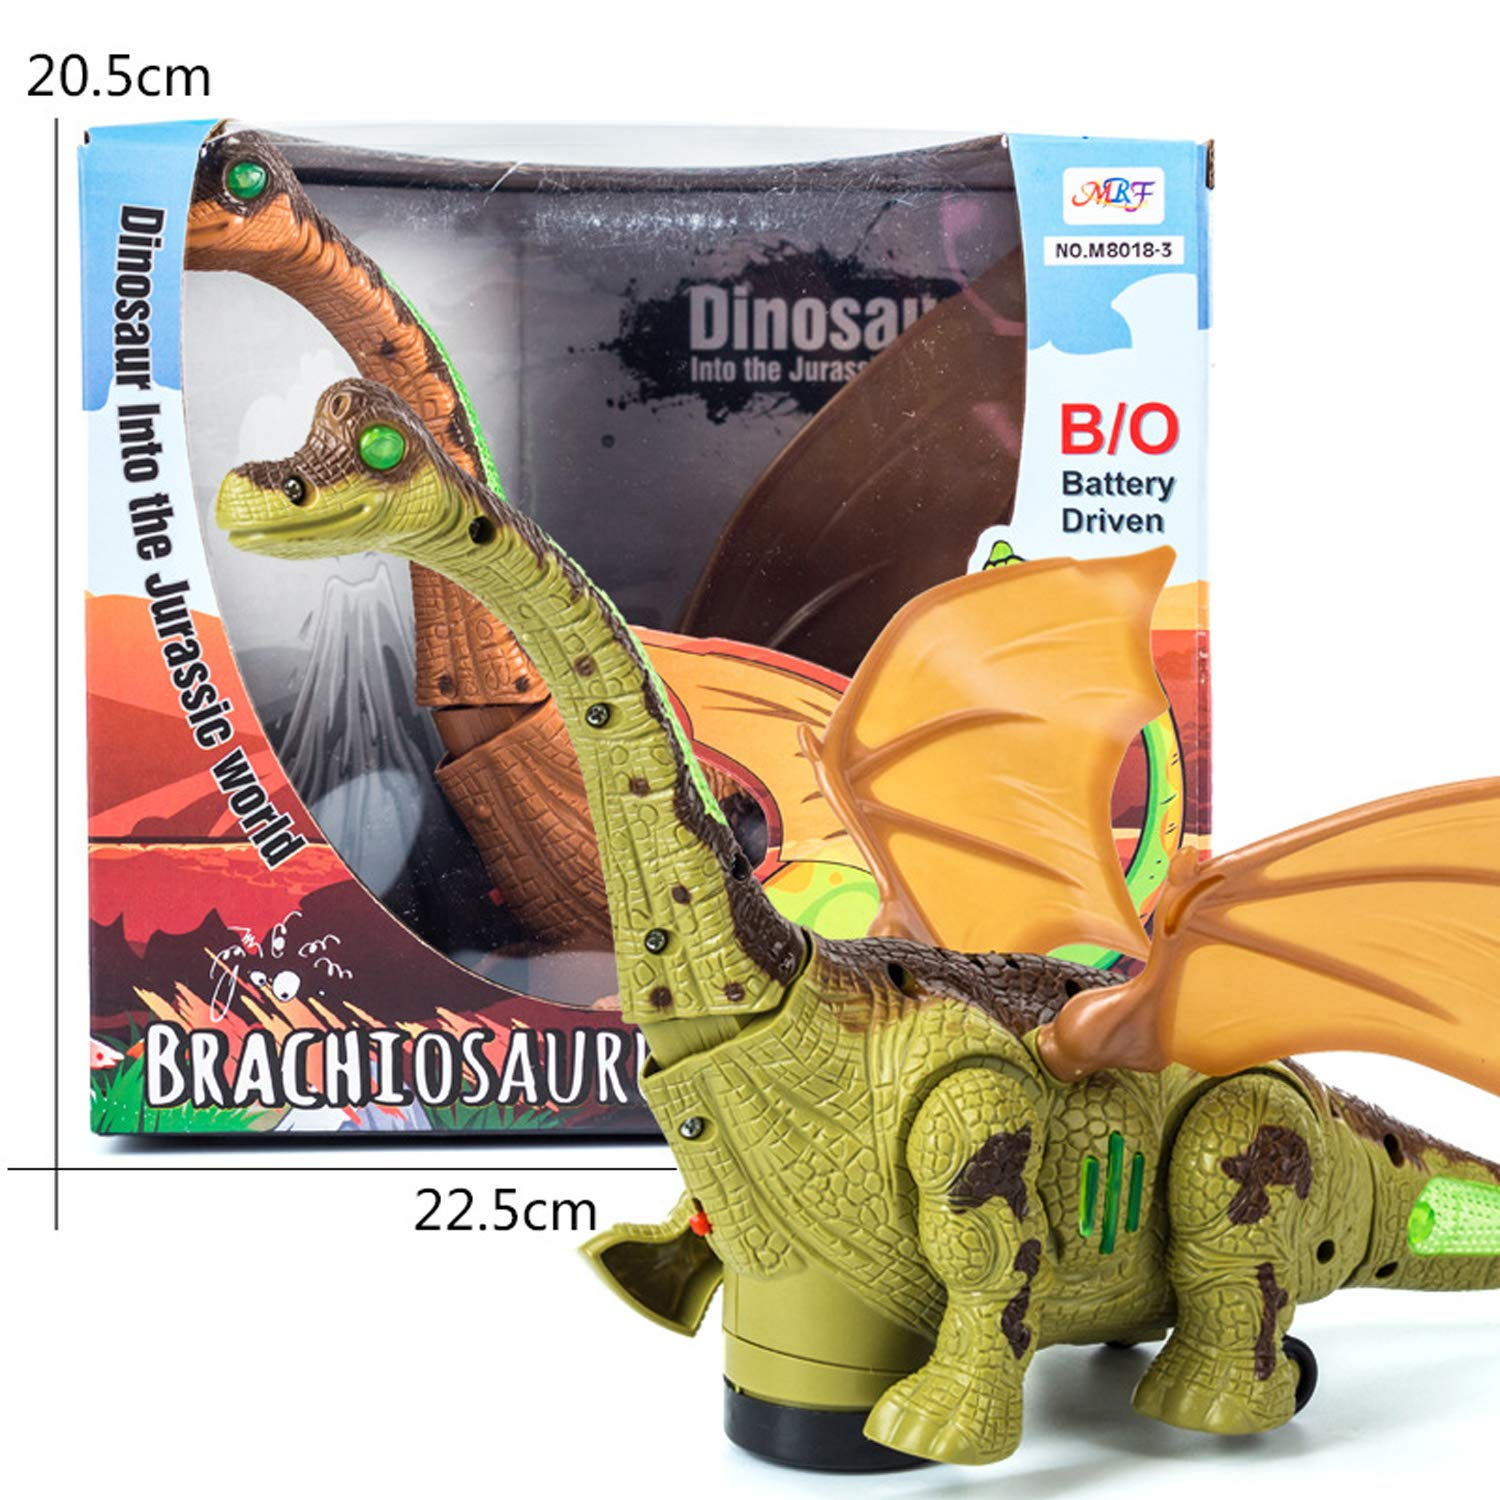 Mrocioa Electronic Dinosaur Toys Walking with Light up&Sound,Big Dino Action Figure 40cm Long for Toddler Boys,Shaking its Tail and Long Neck (Green) by Mrocioa (Image #8)